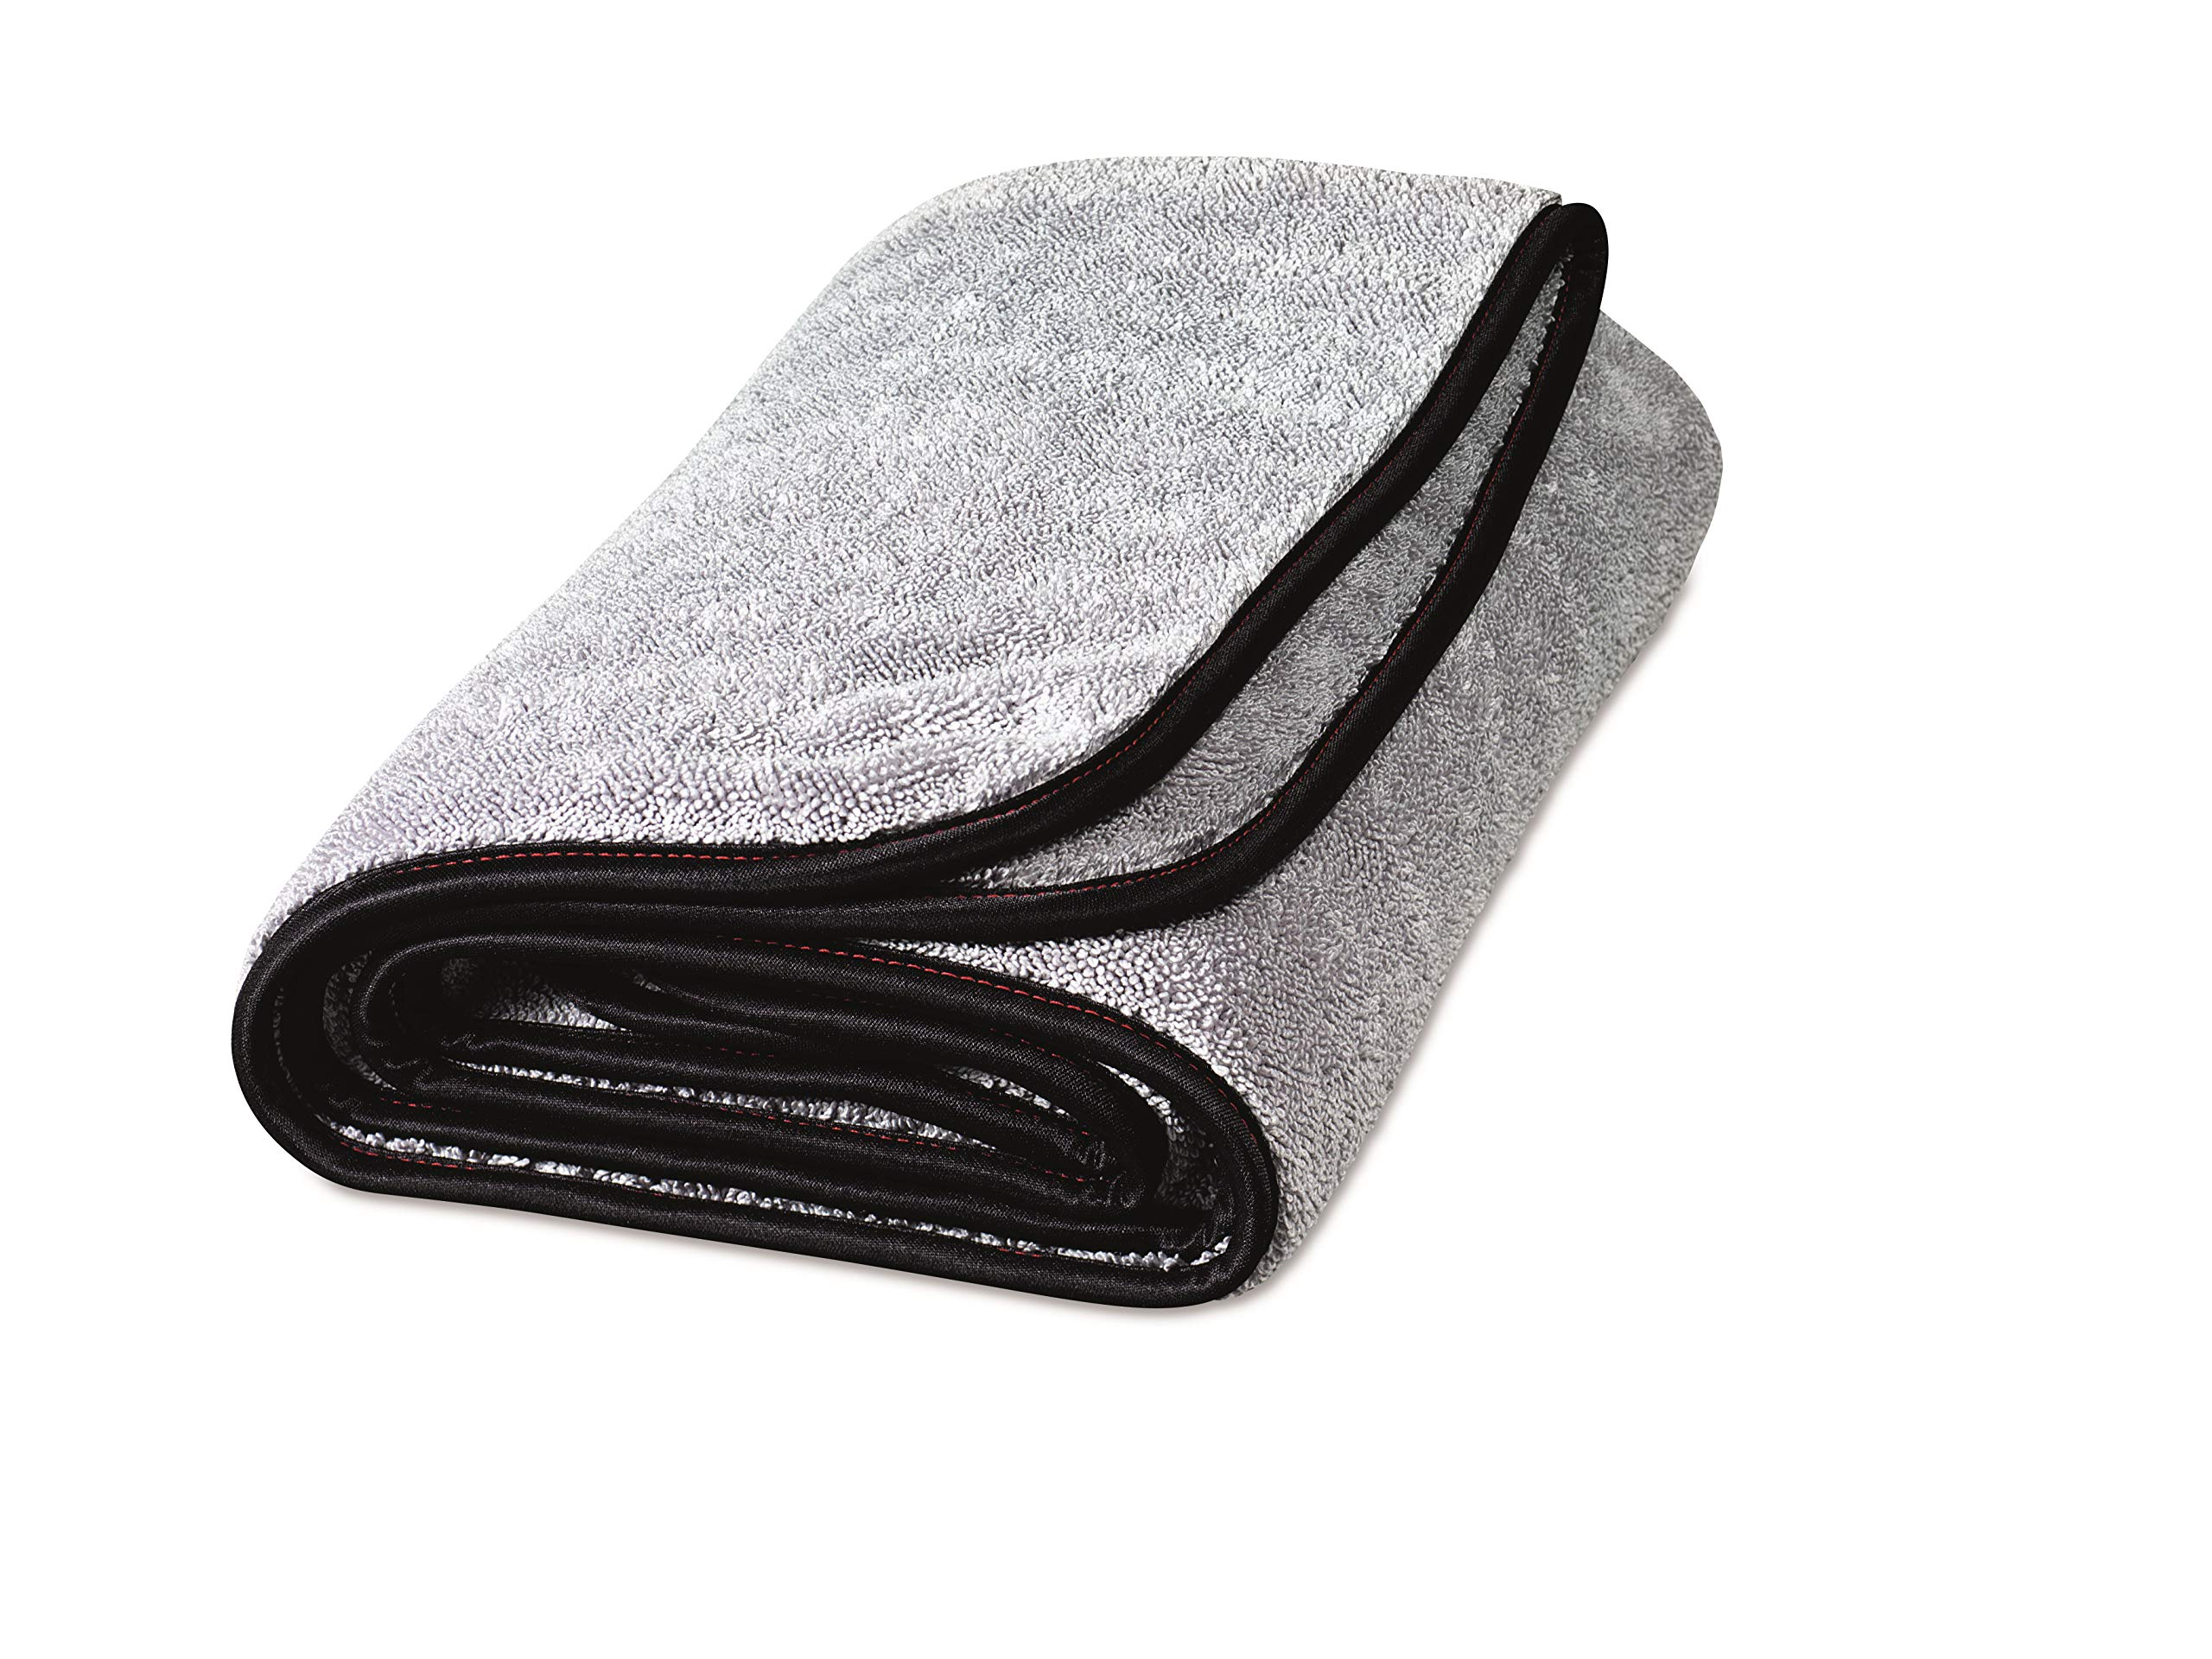 Griot's Garage 55590 PFM Terry Weave Drying Towel